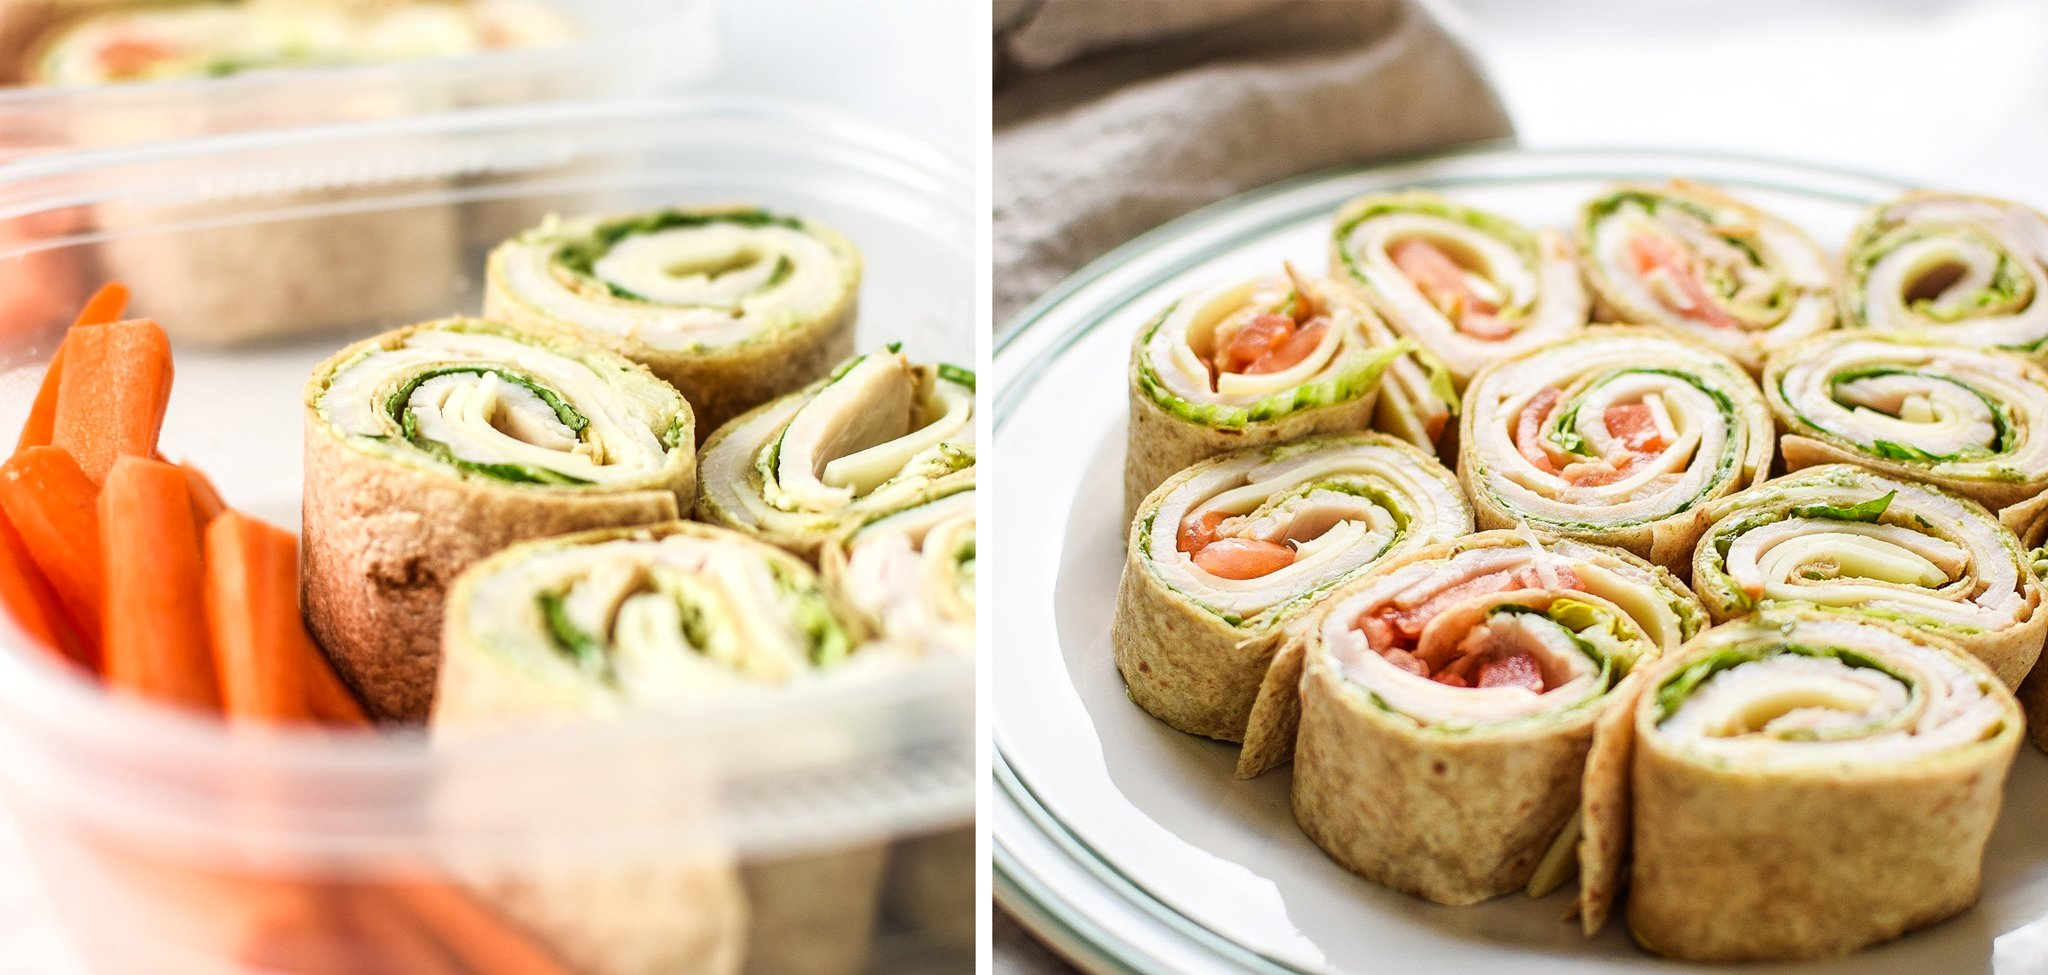 turkey pesto tortilla pinwheels prepped in lunch containers and made on a plate